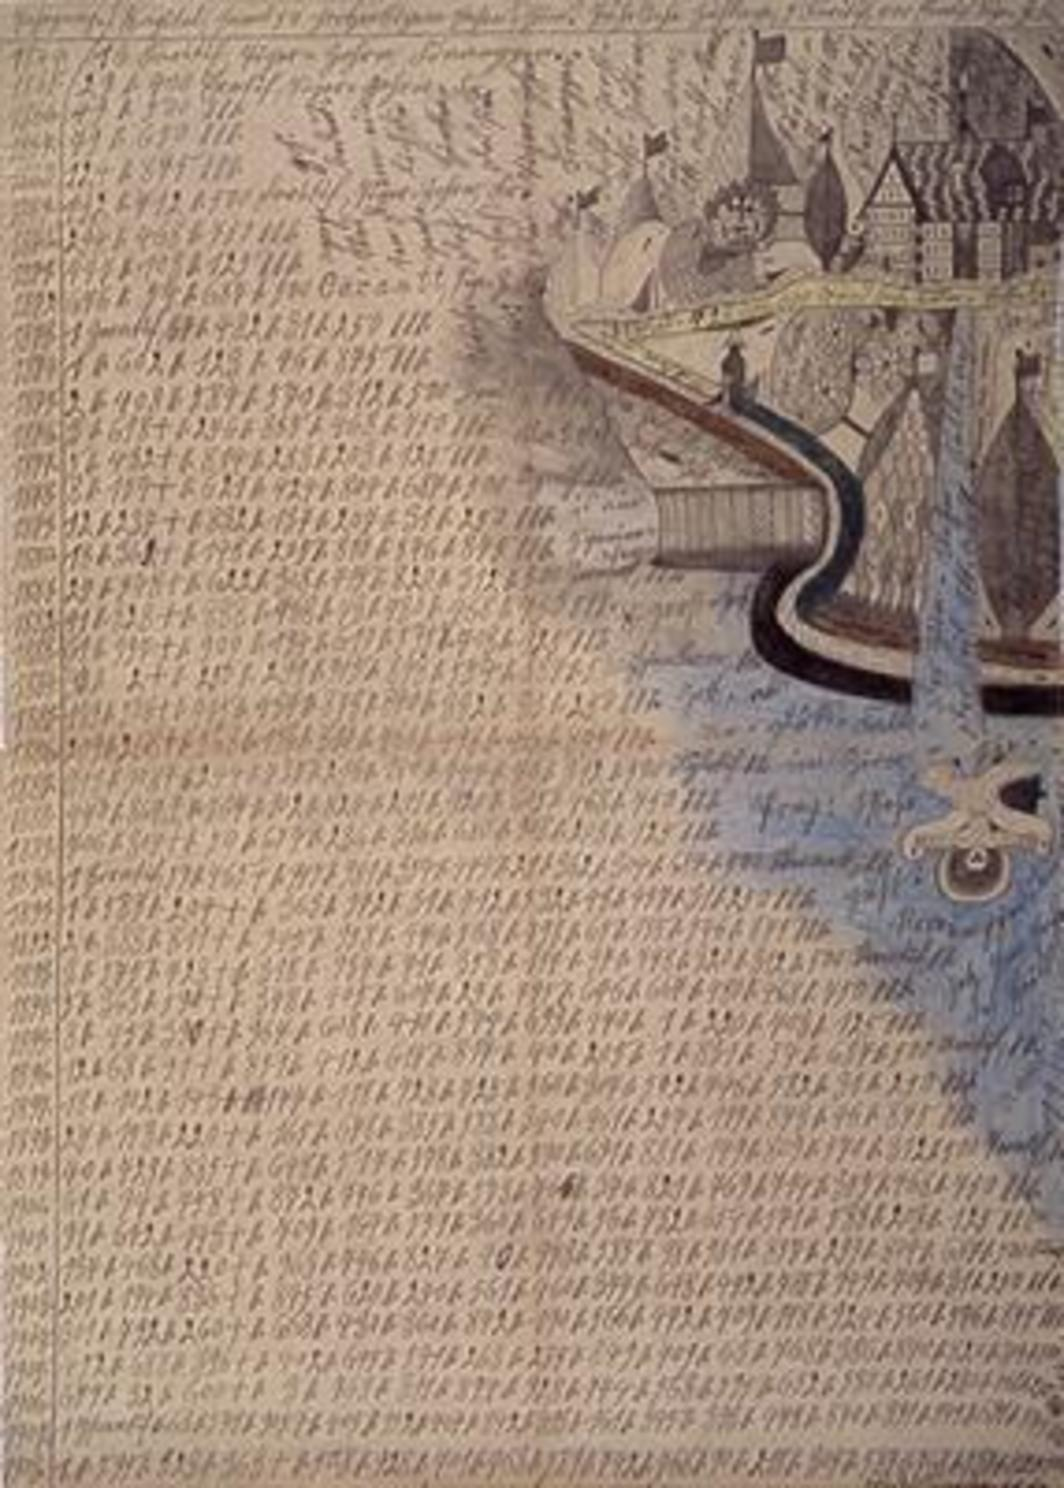 "Adolf Wölfli Der Zion-Wasser-Fall (The waterfall in Zion), 1914, pencil and colored pencil on newsprint, 39 1/2 x 28 1/4""."